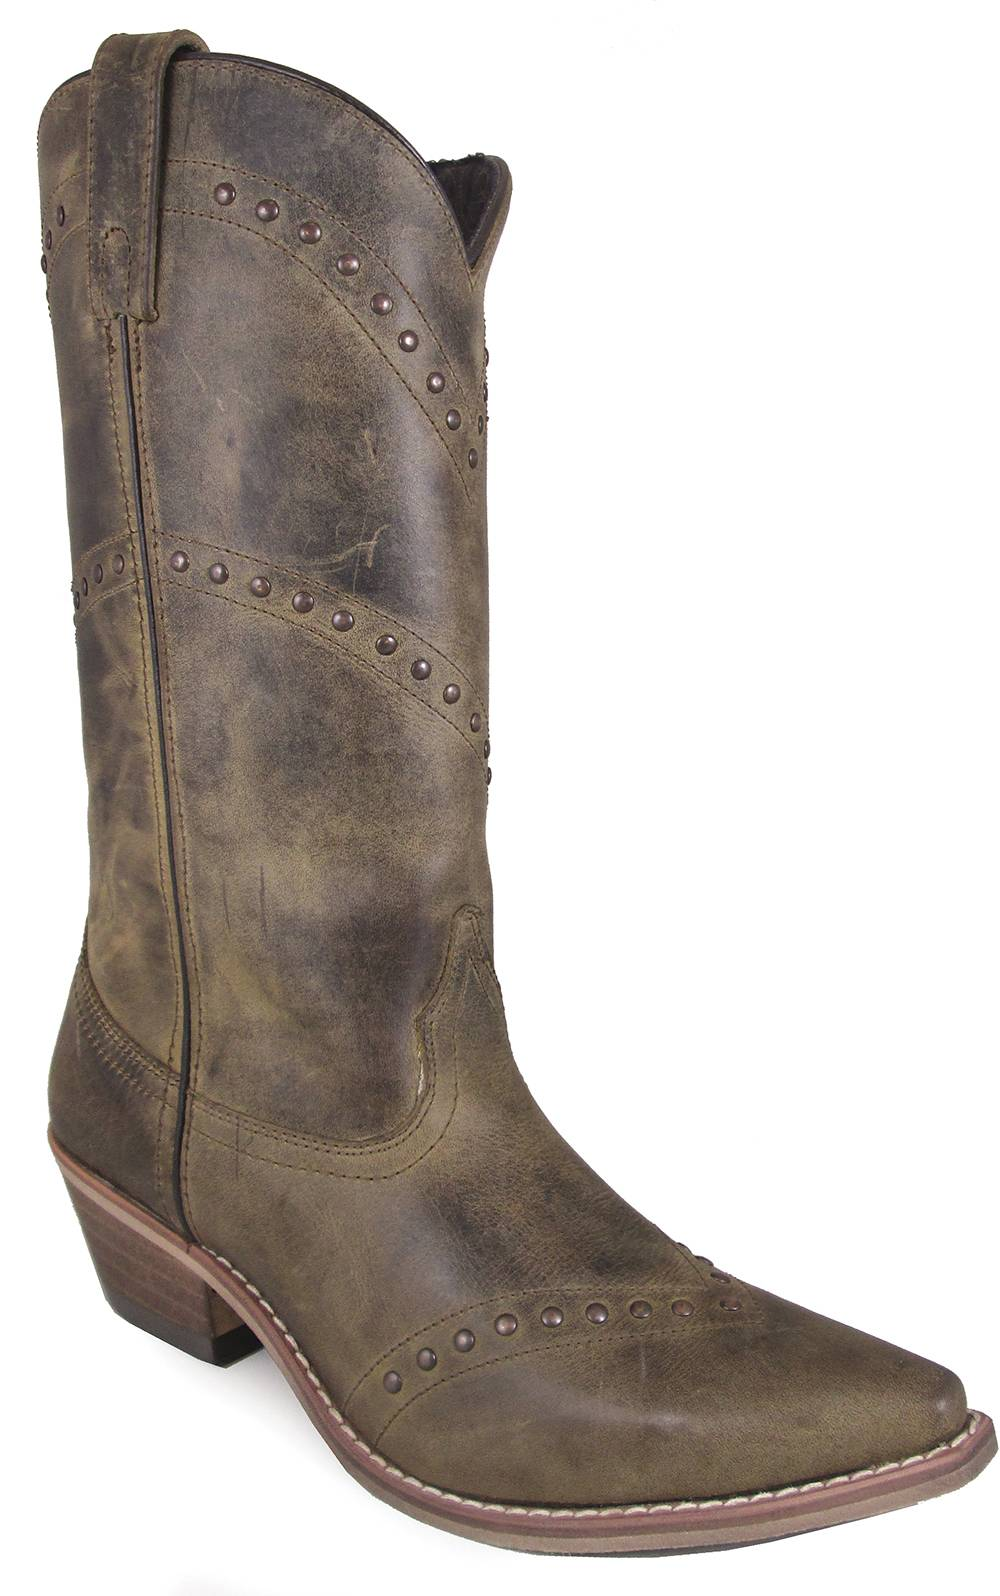 Smoky Mountain Crystal 12-inch Snip Toe Leather Boots - Ladies - Brown